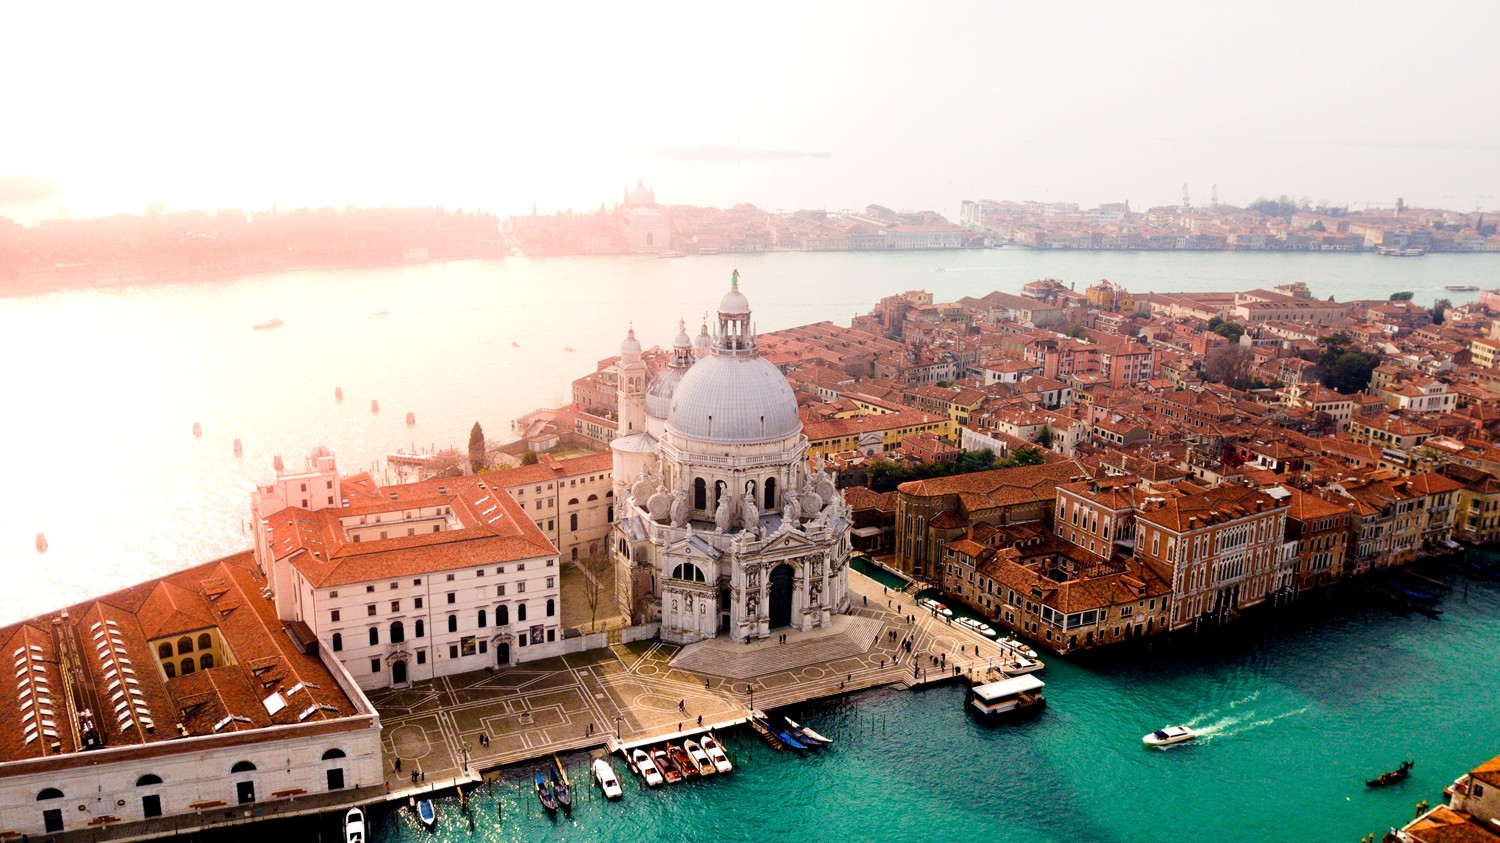 Vacations to Italy by Expert Travel Agents Who've Been There - Sunset Travel & Cruise, Chicago IL 60614